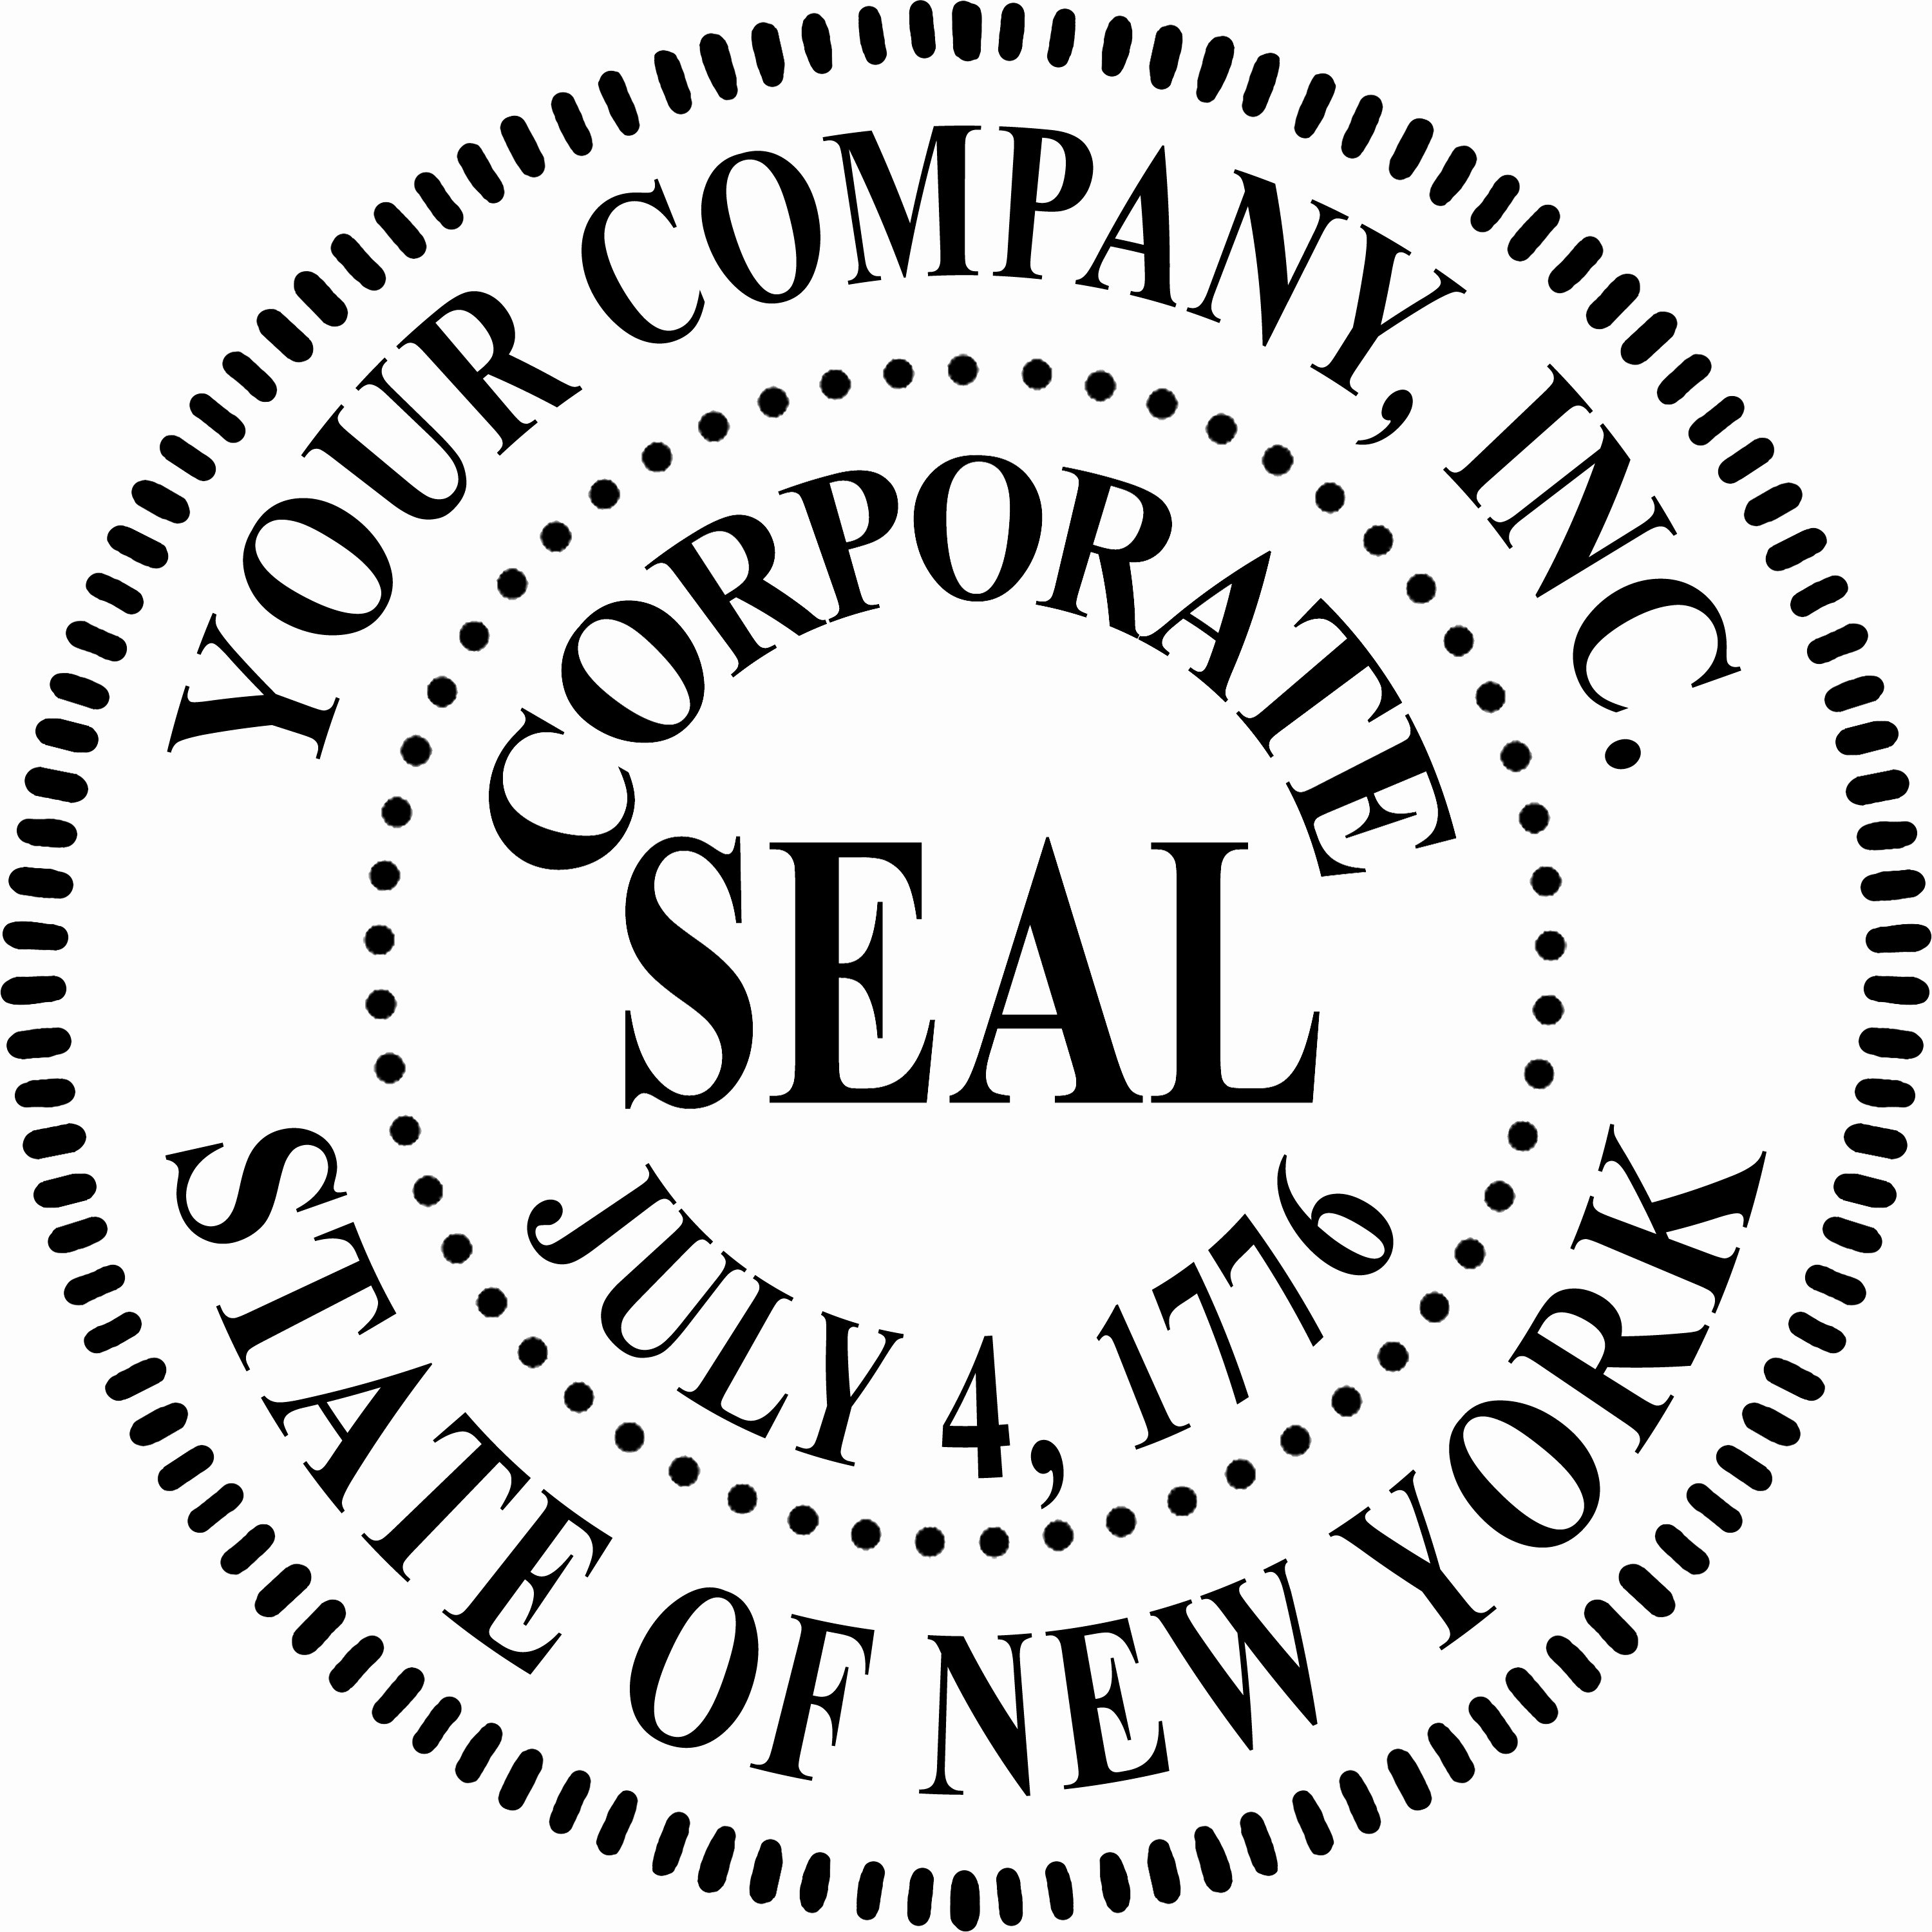 Corporate Seal Template Word Fresh Corporation Setup & Dissolution R&g Brenner